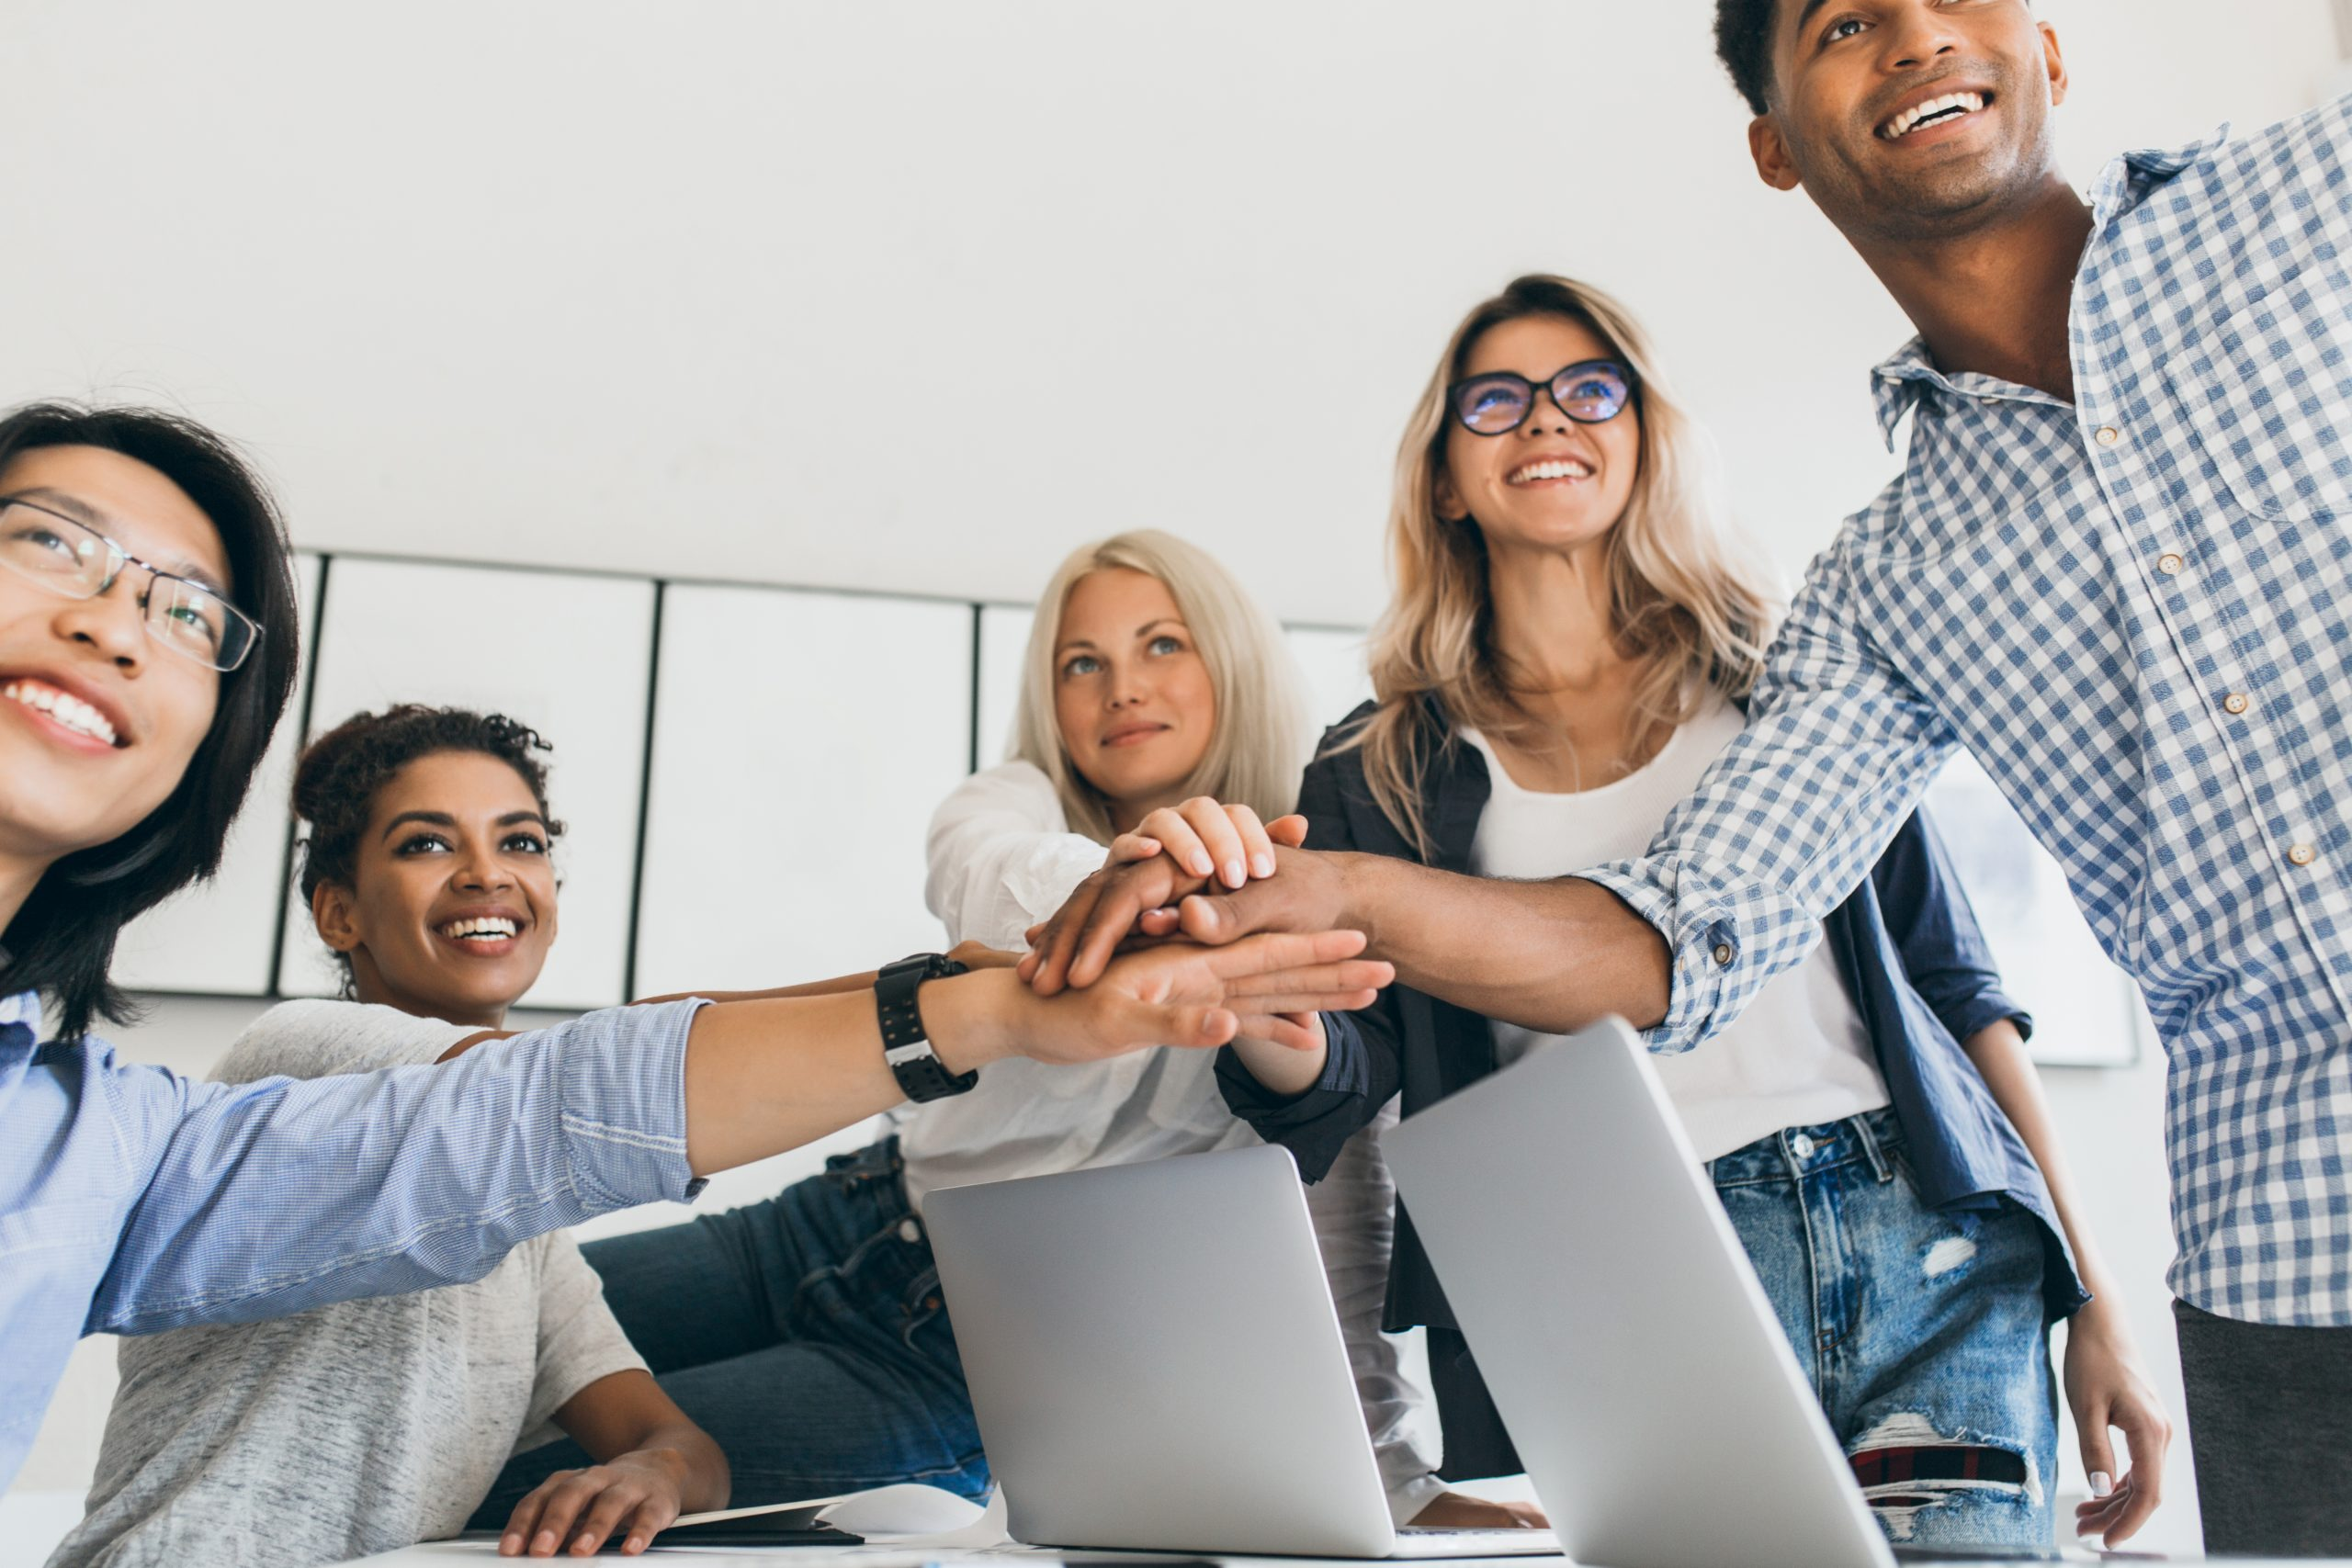 Asian businessman in leather wristwatch holding hands with partners and smiling. Indoor portrait of team of office workers having fun before big project..